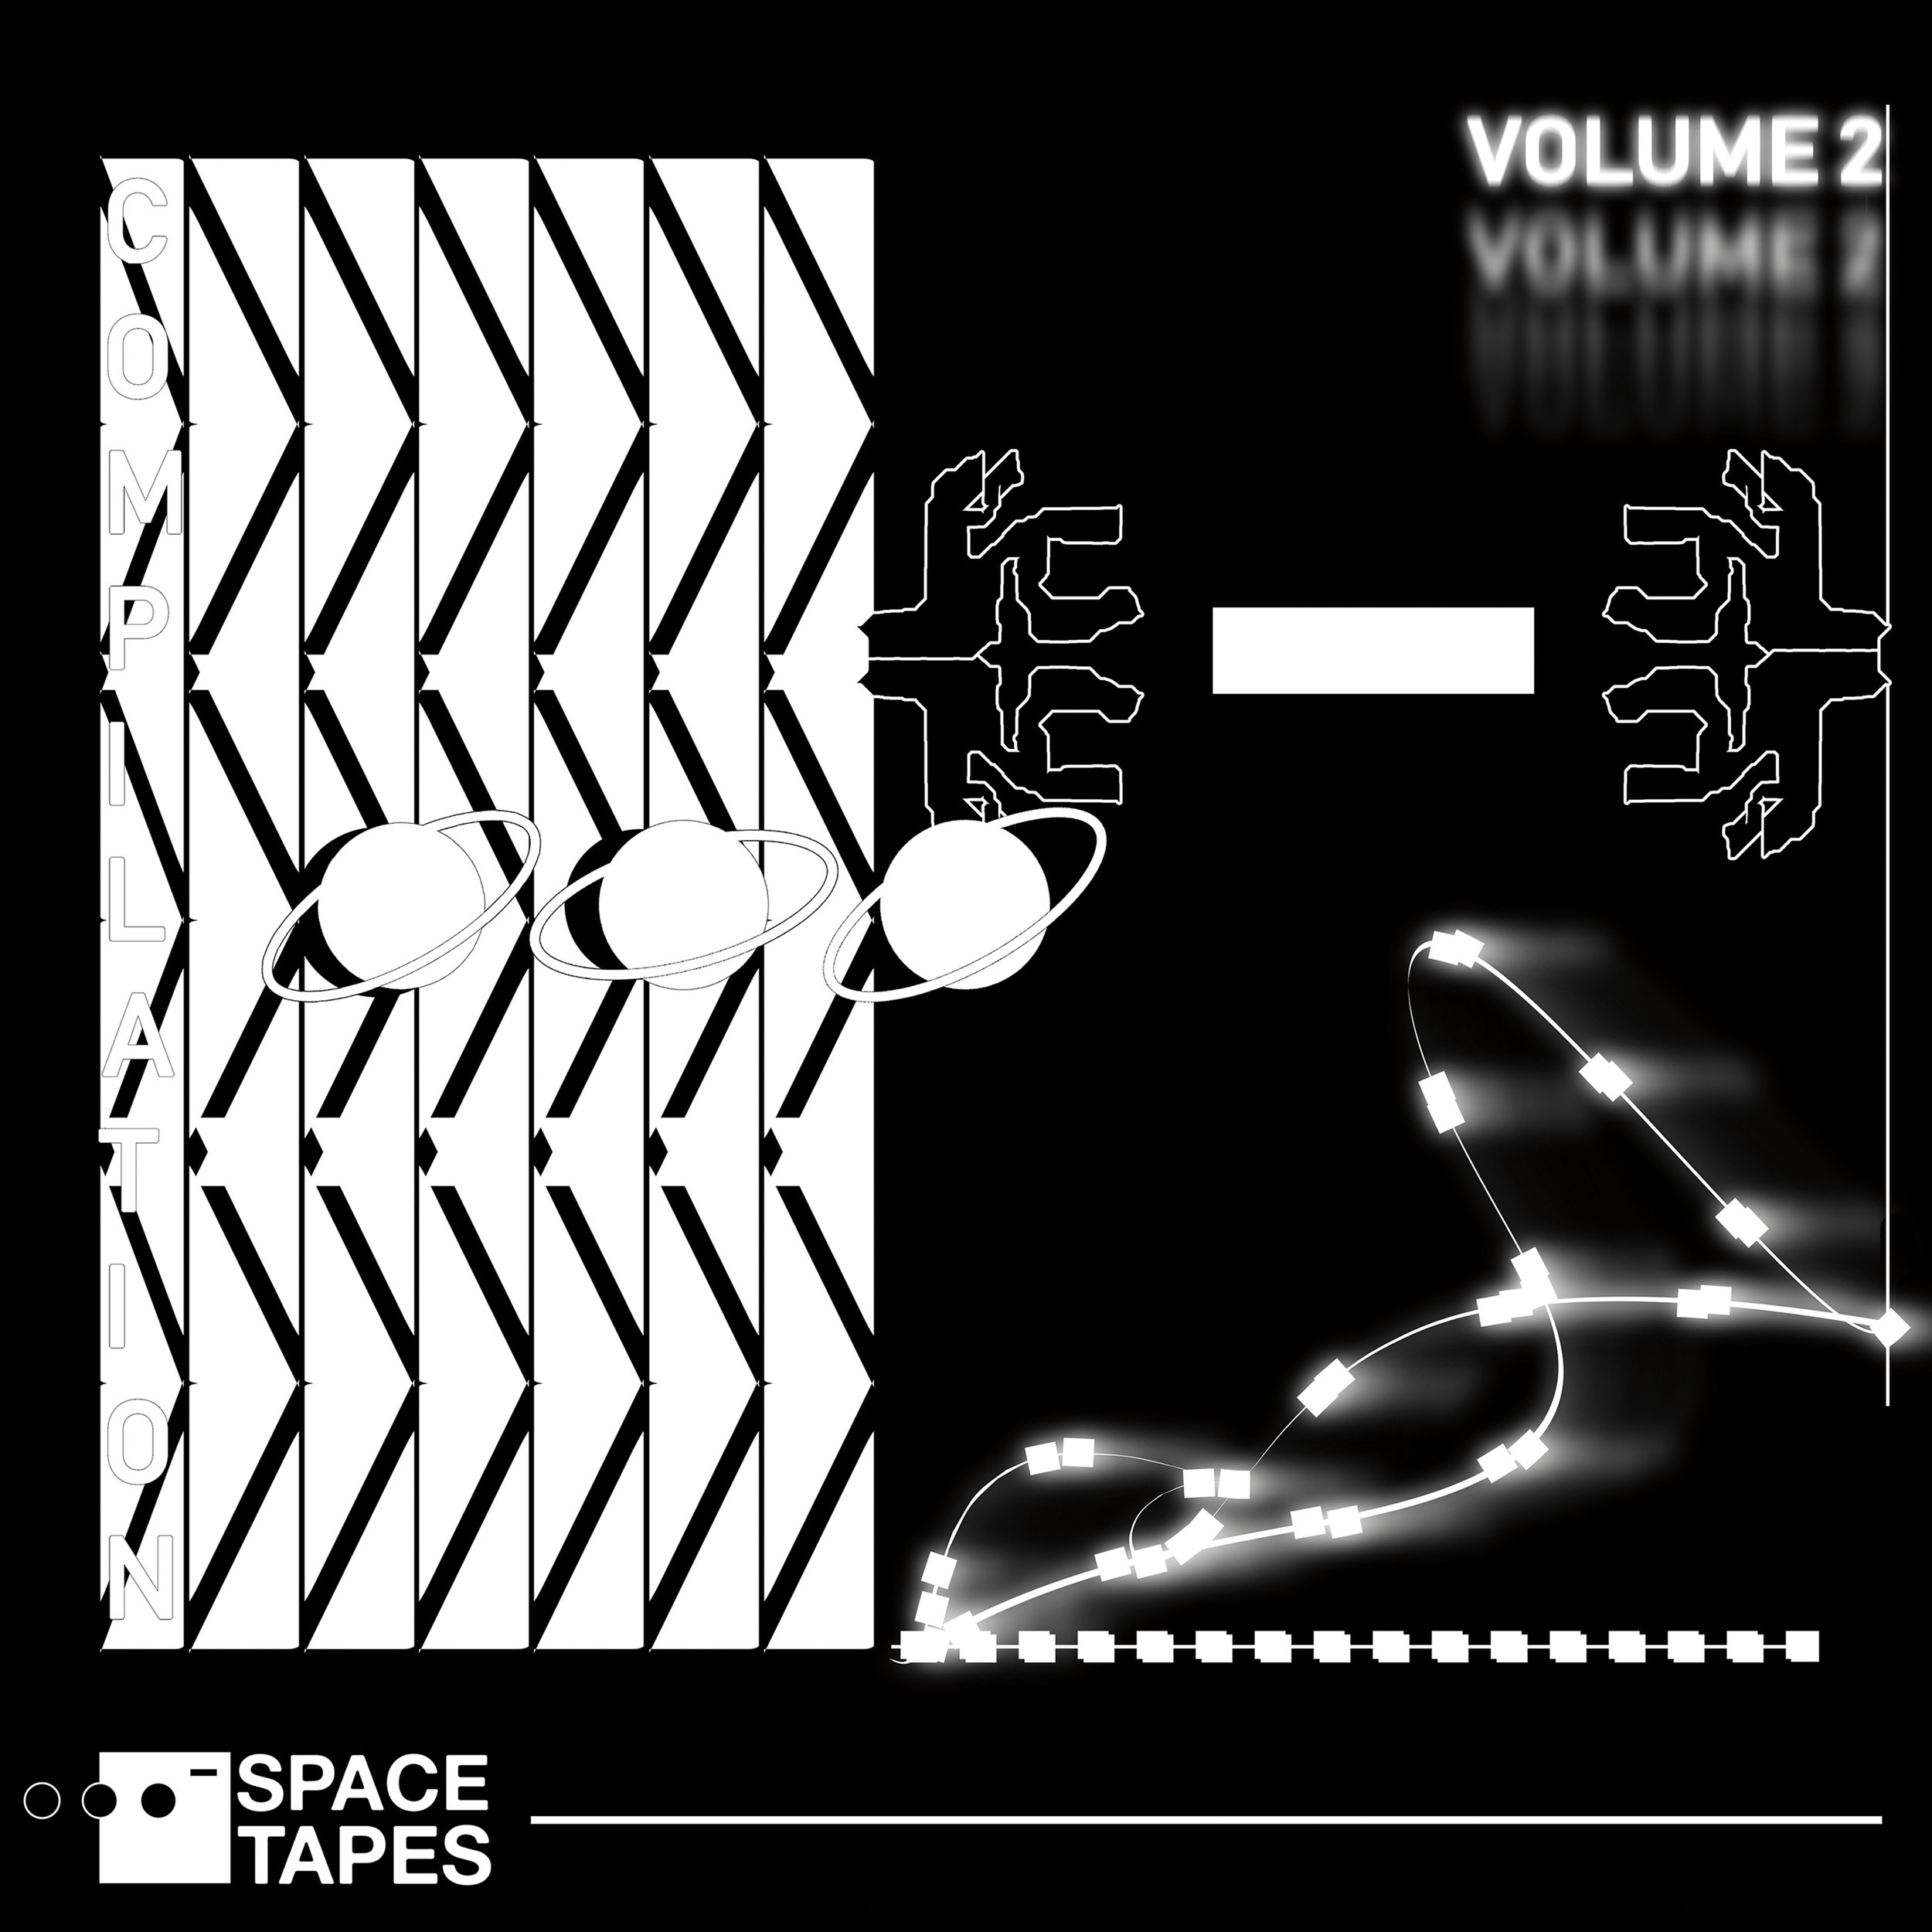 SPACE TAPES COMPILATION / VOL. 2  EP - ST009